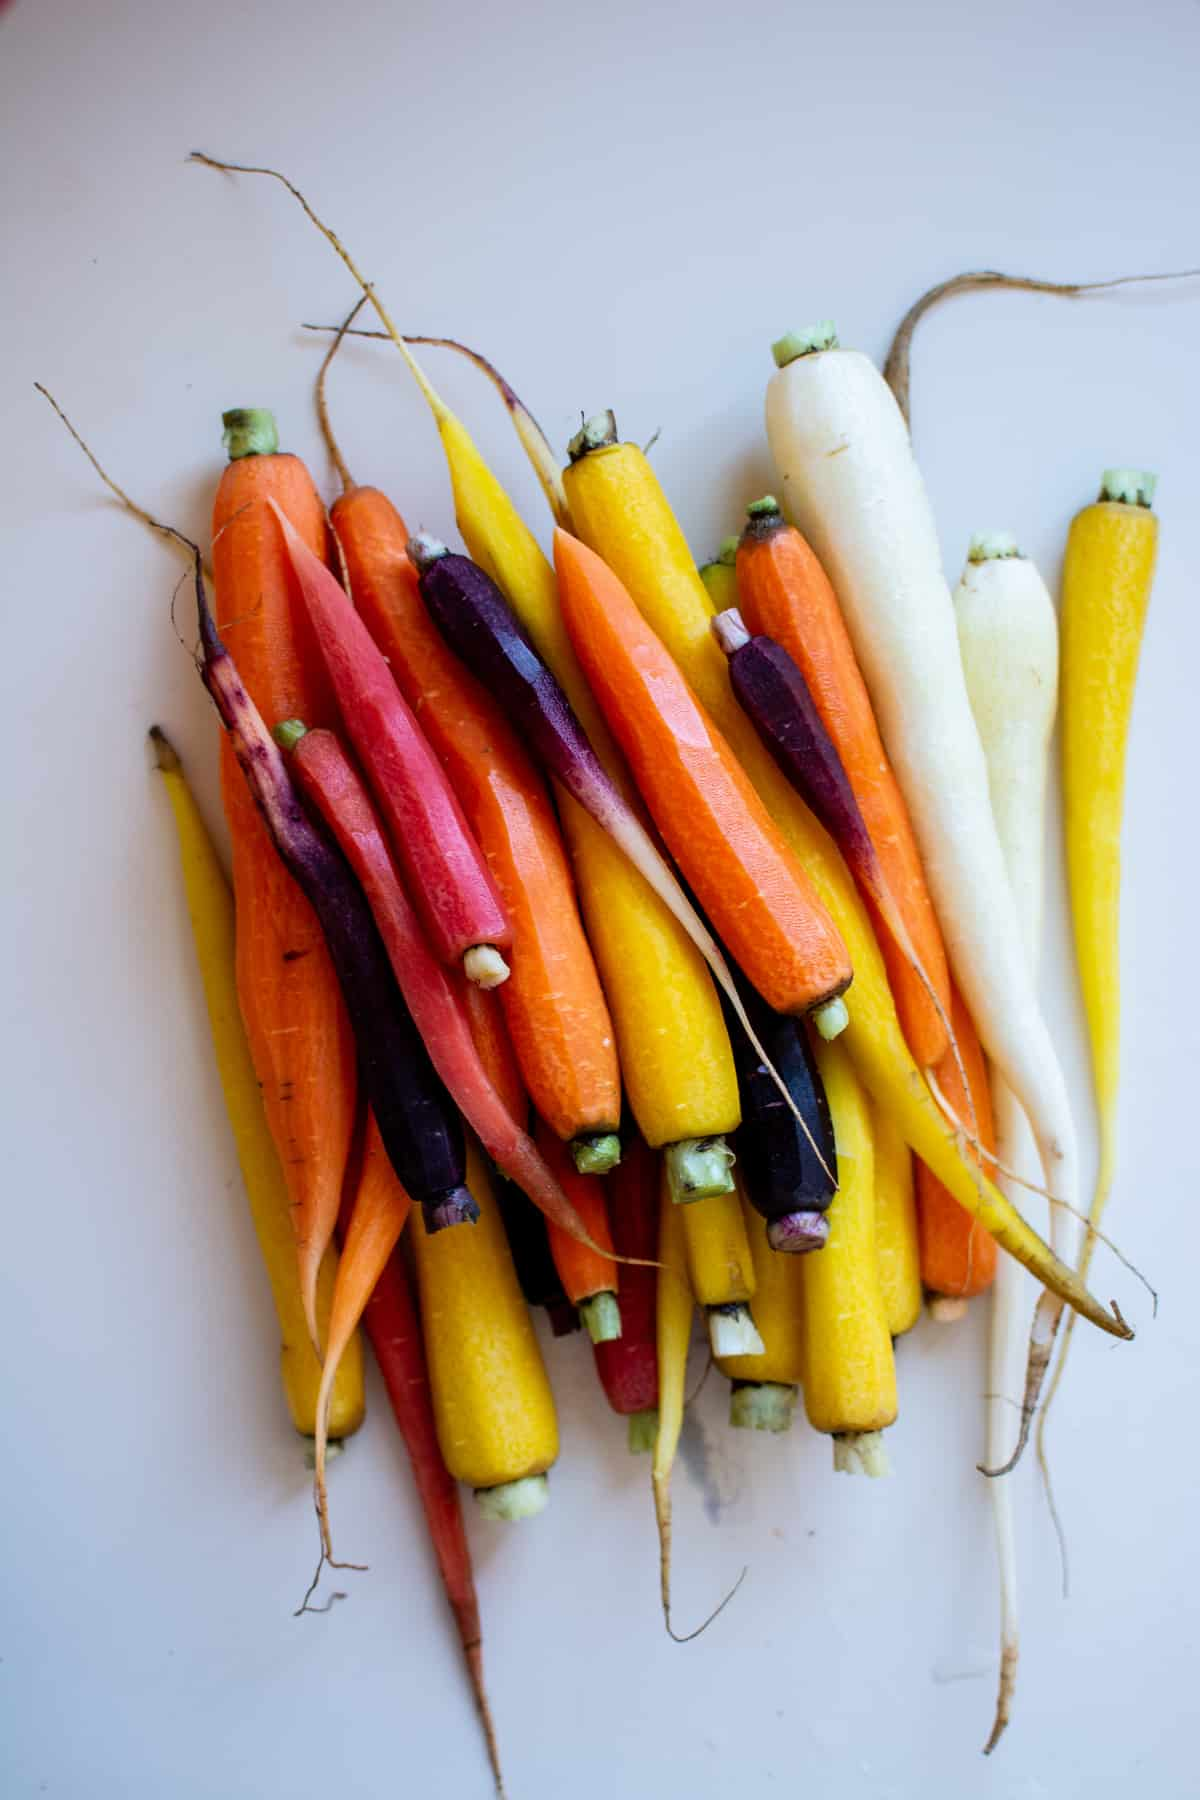 A pile of peeled rainbow carrots sitting on a white surface.